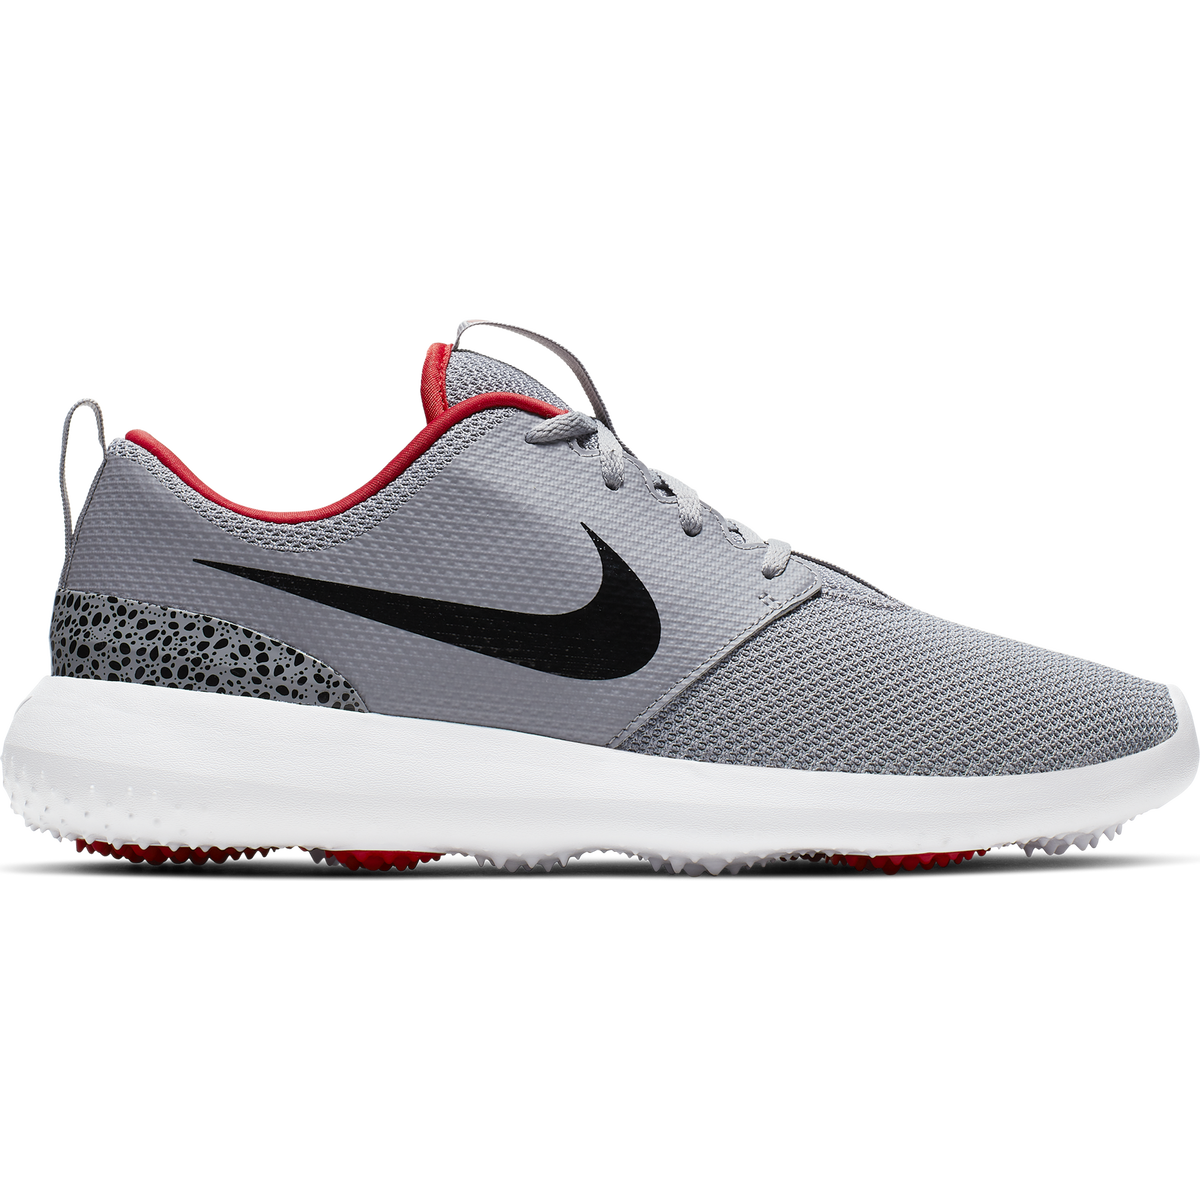 114455280360e Nike Roshe G Men s Golf Shoe - Grey Red